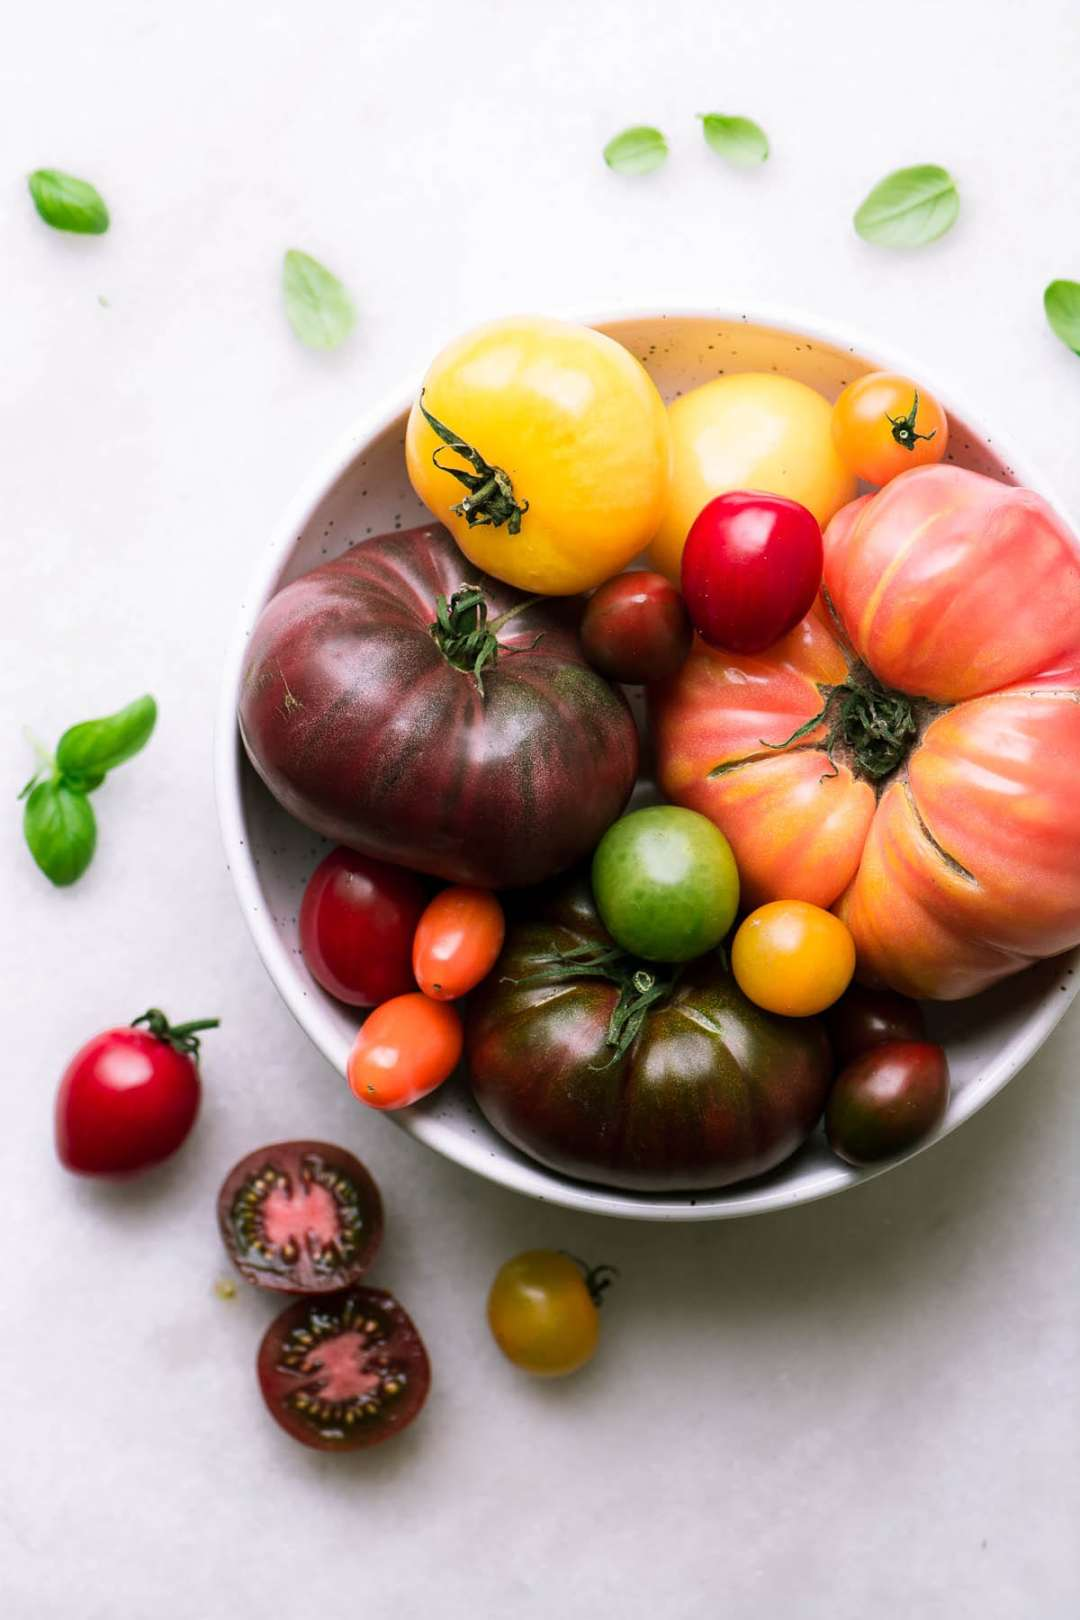 Best Heirloom Tomato Recipes ~ tomatoes in a bowl with basil leaves